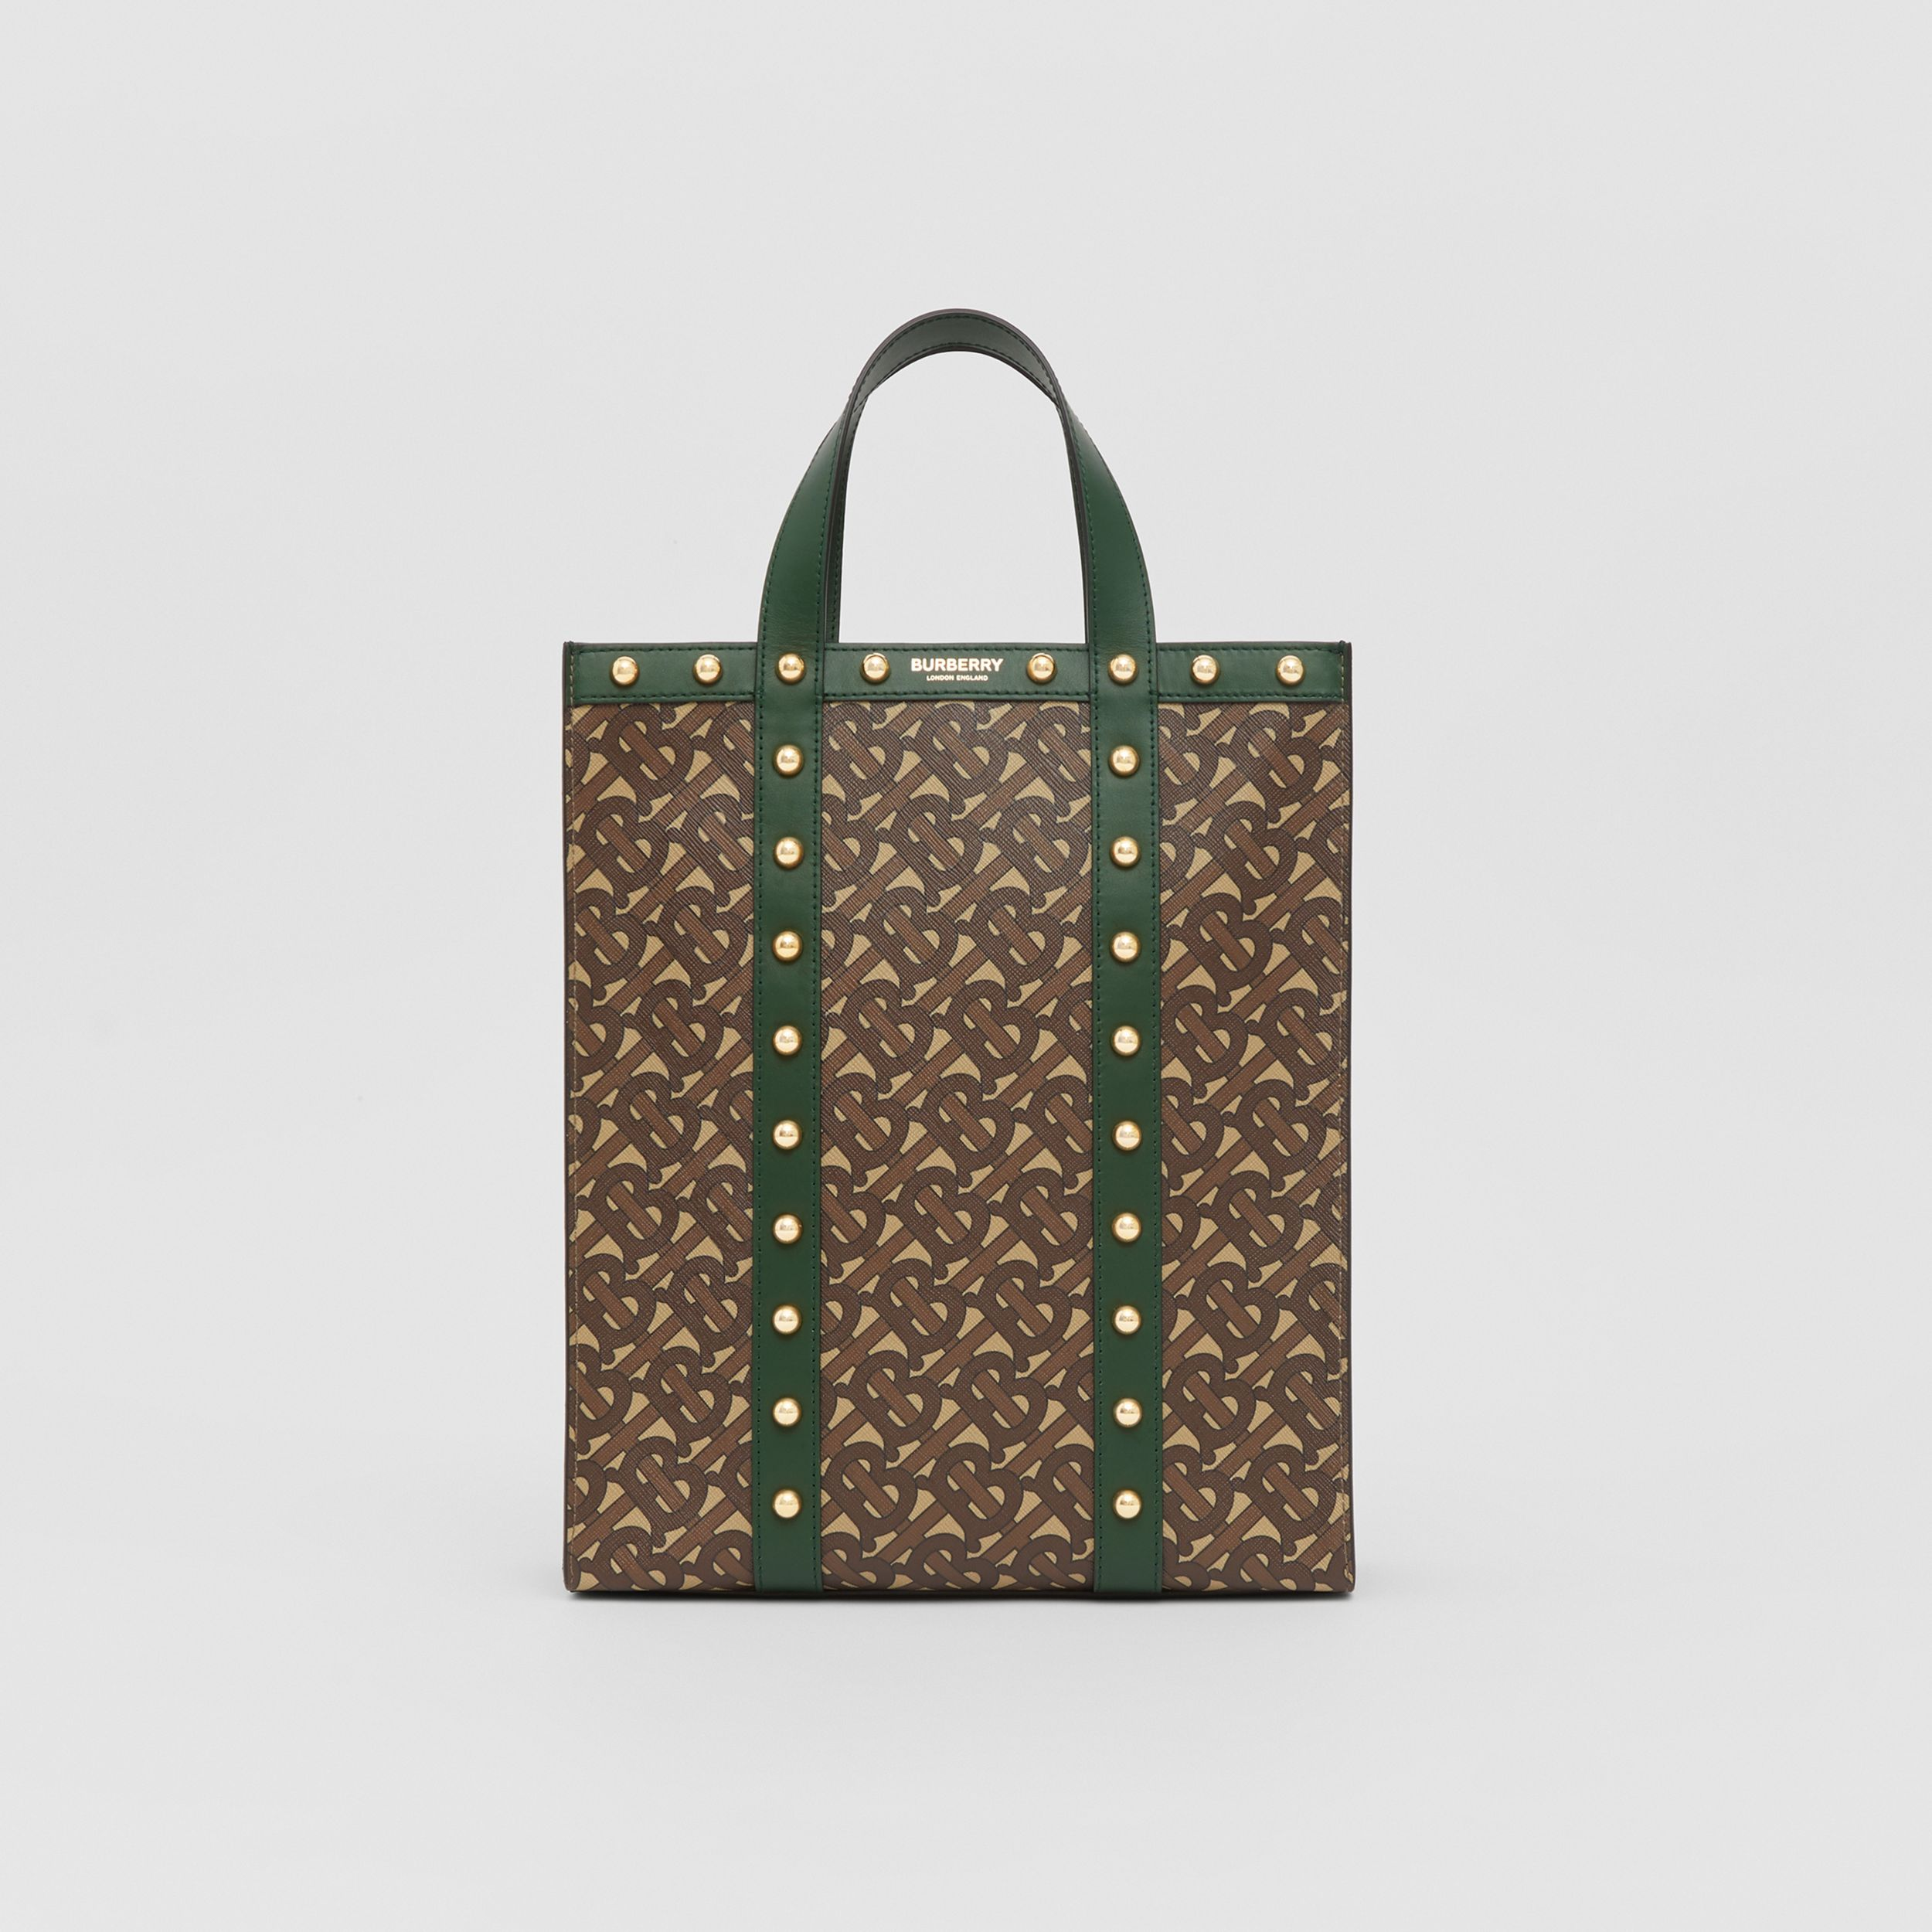 Small Monogram Print E-canvas Portrait Tote Bag in Dark Pine Green - Women | Burberry - 1